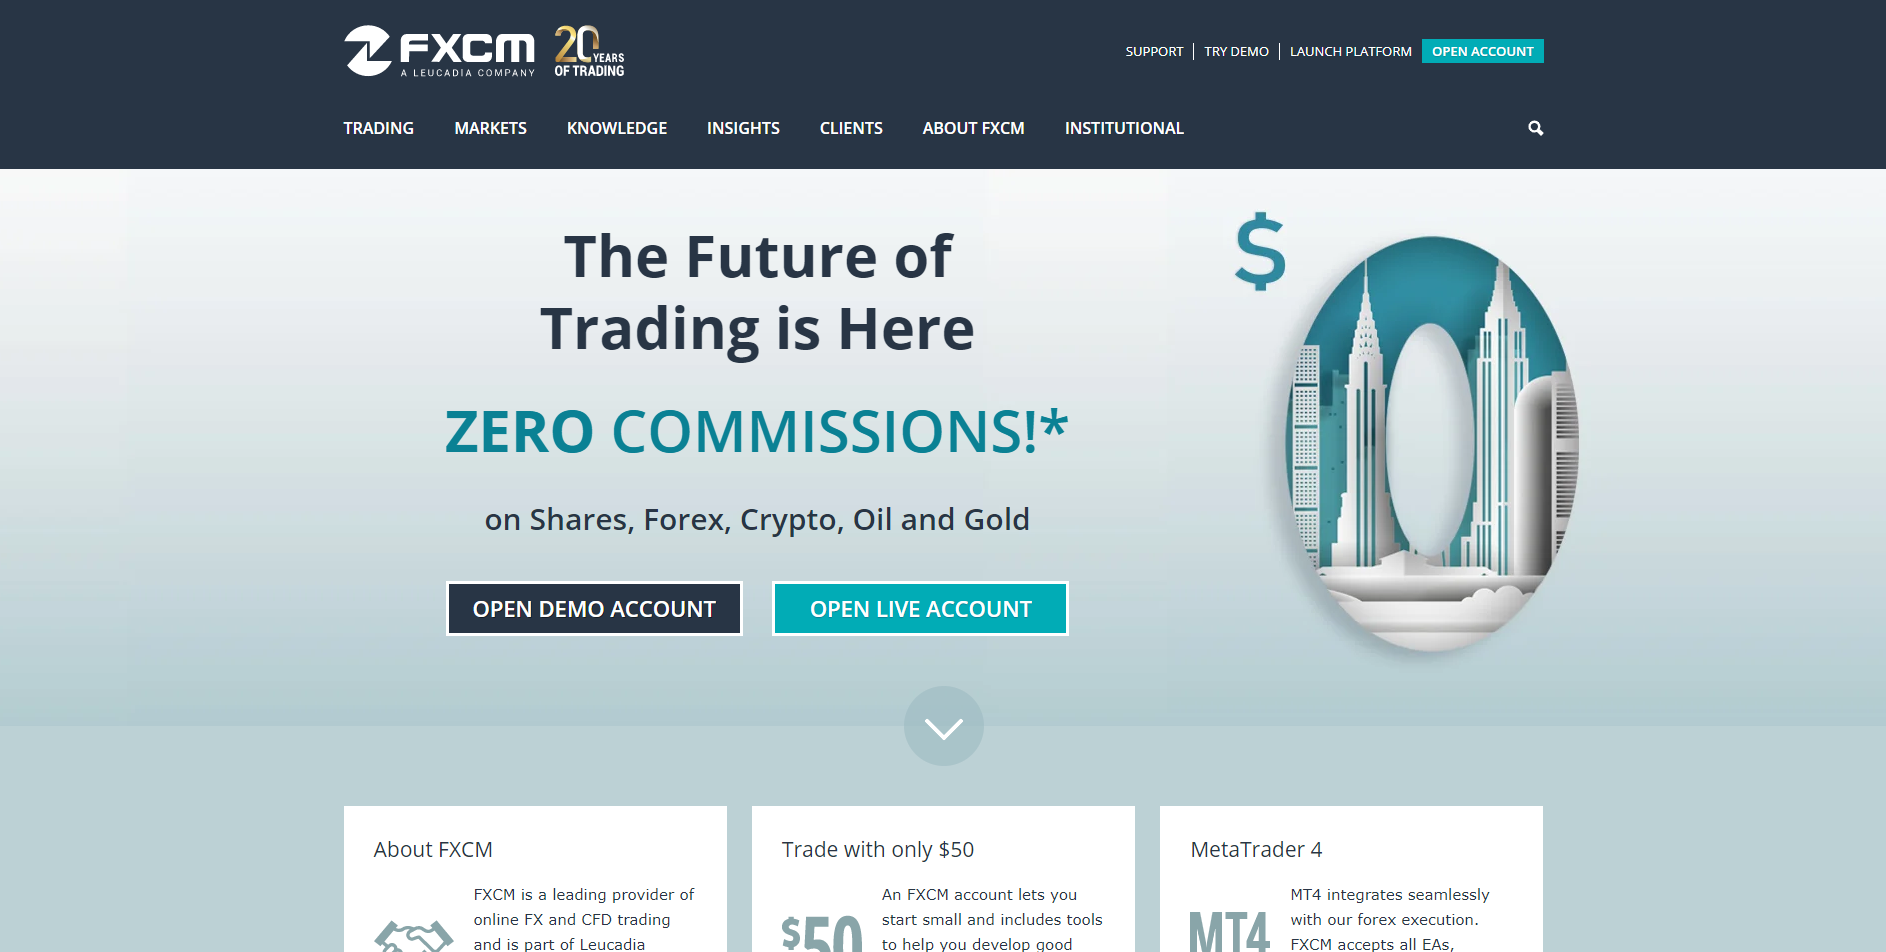 Official website of the forex broker FXCM in Europe